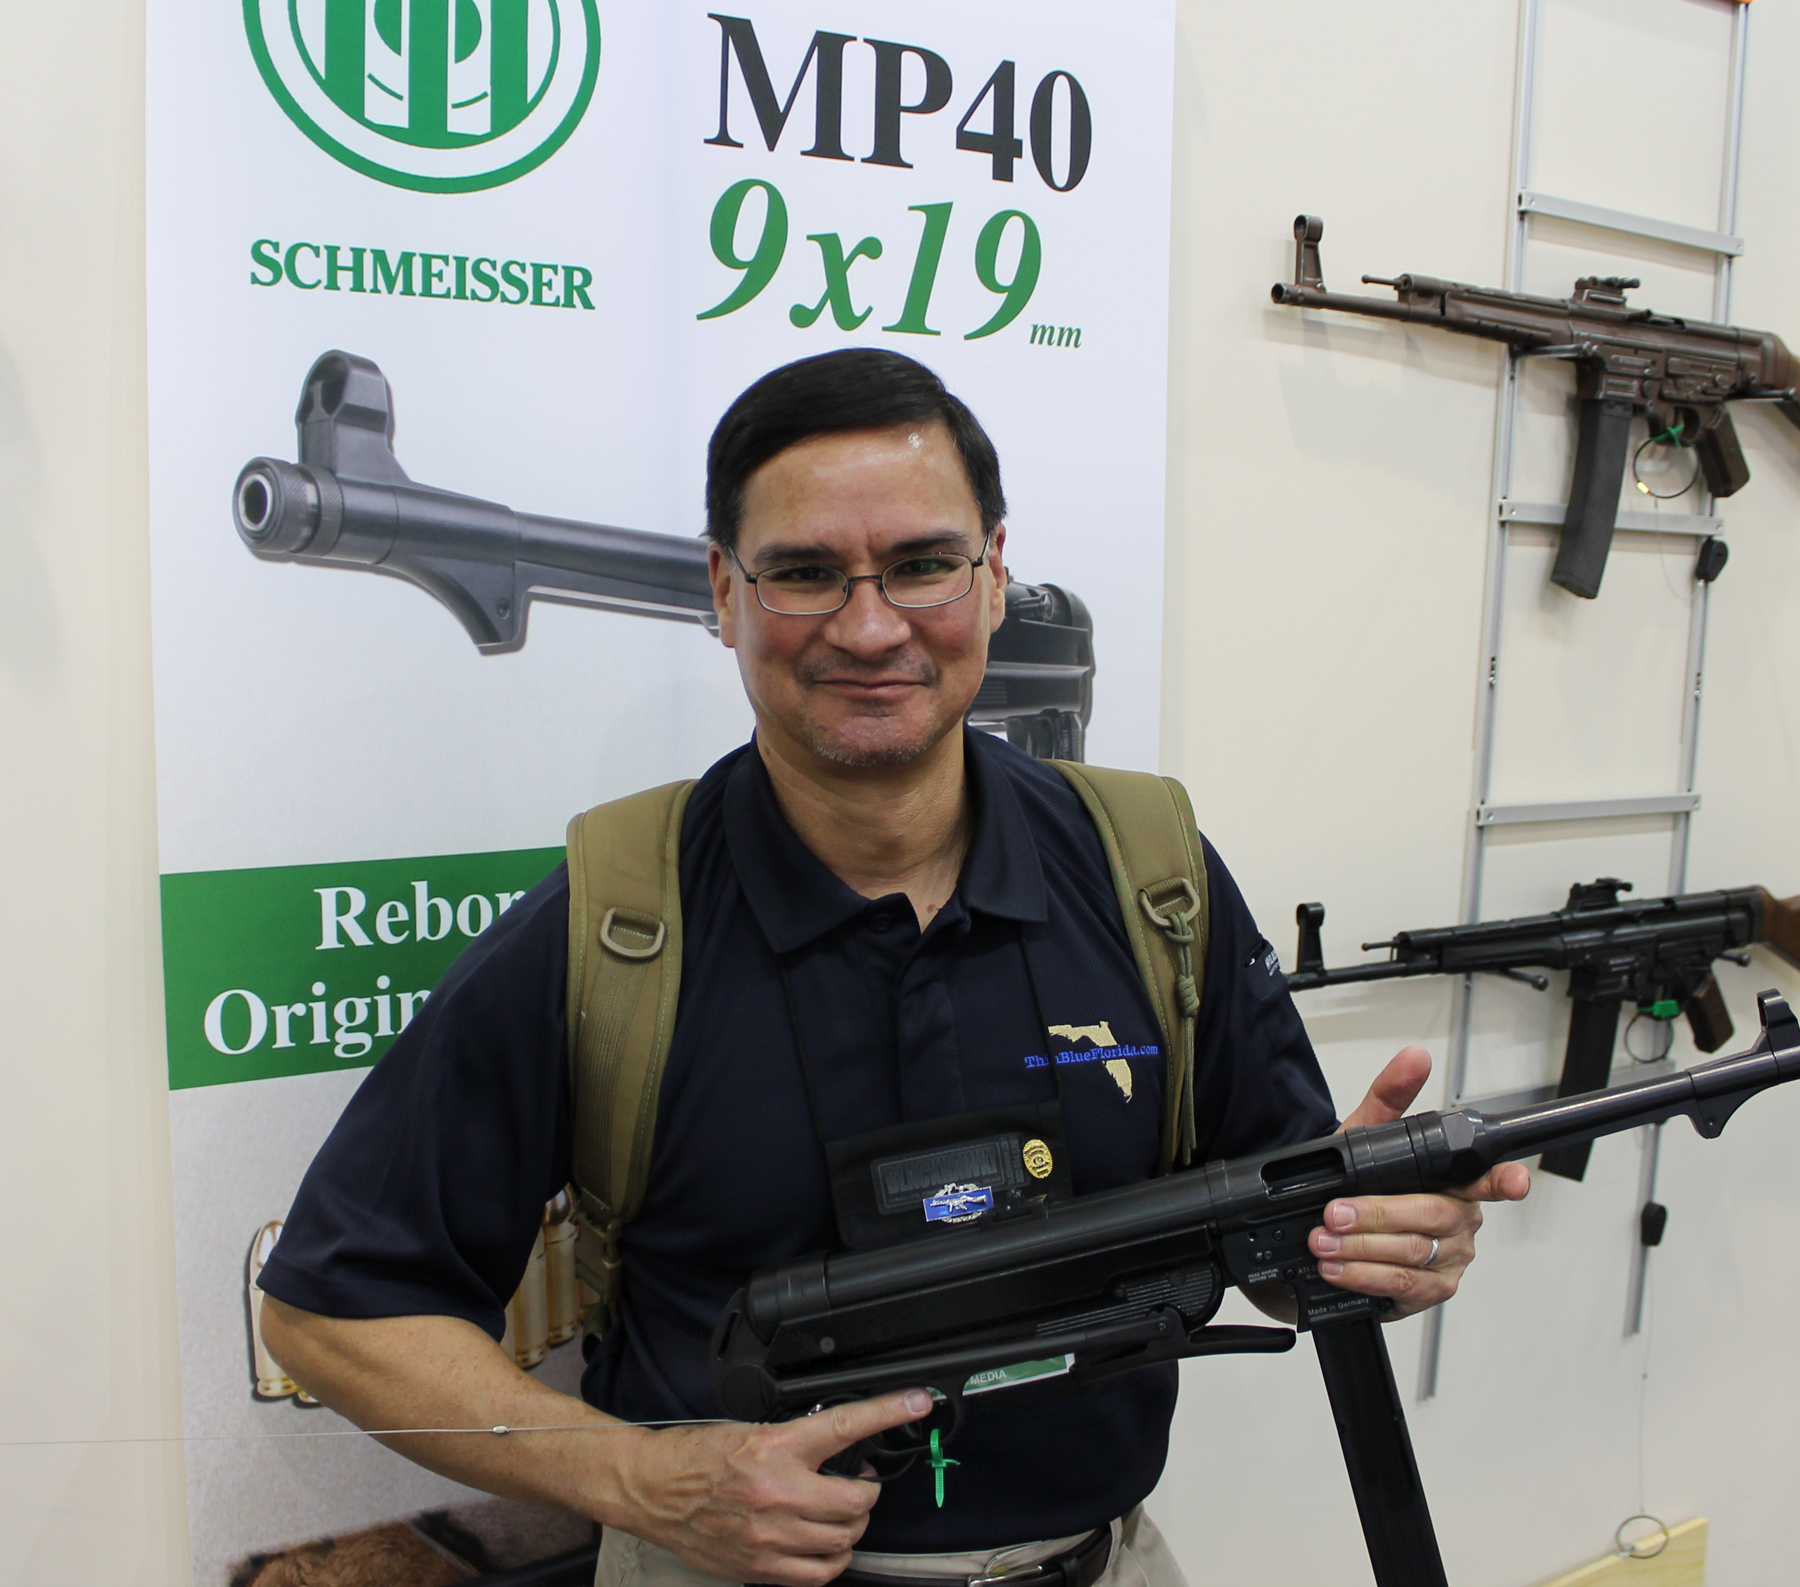 Randall with Schmeisser MP40